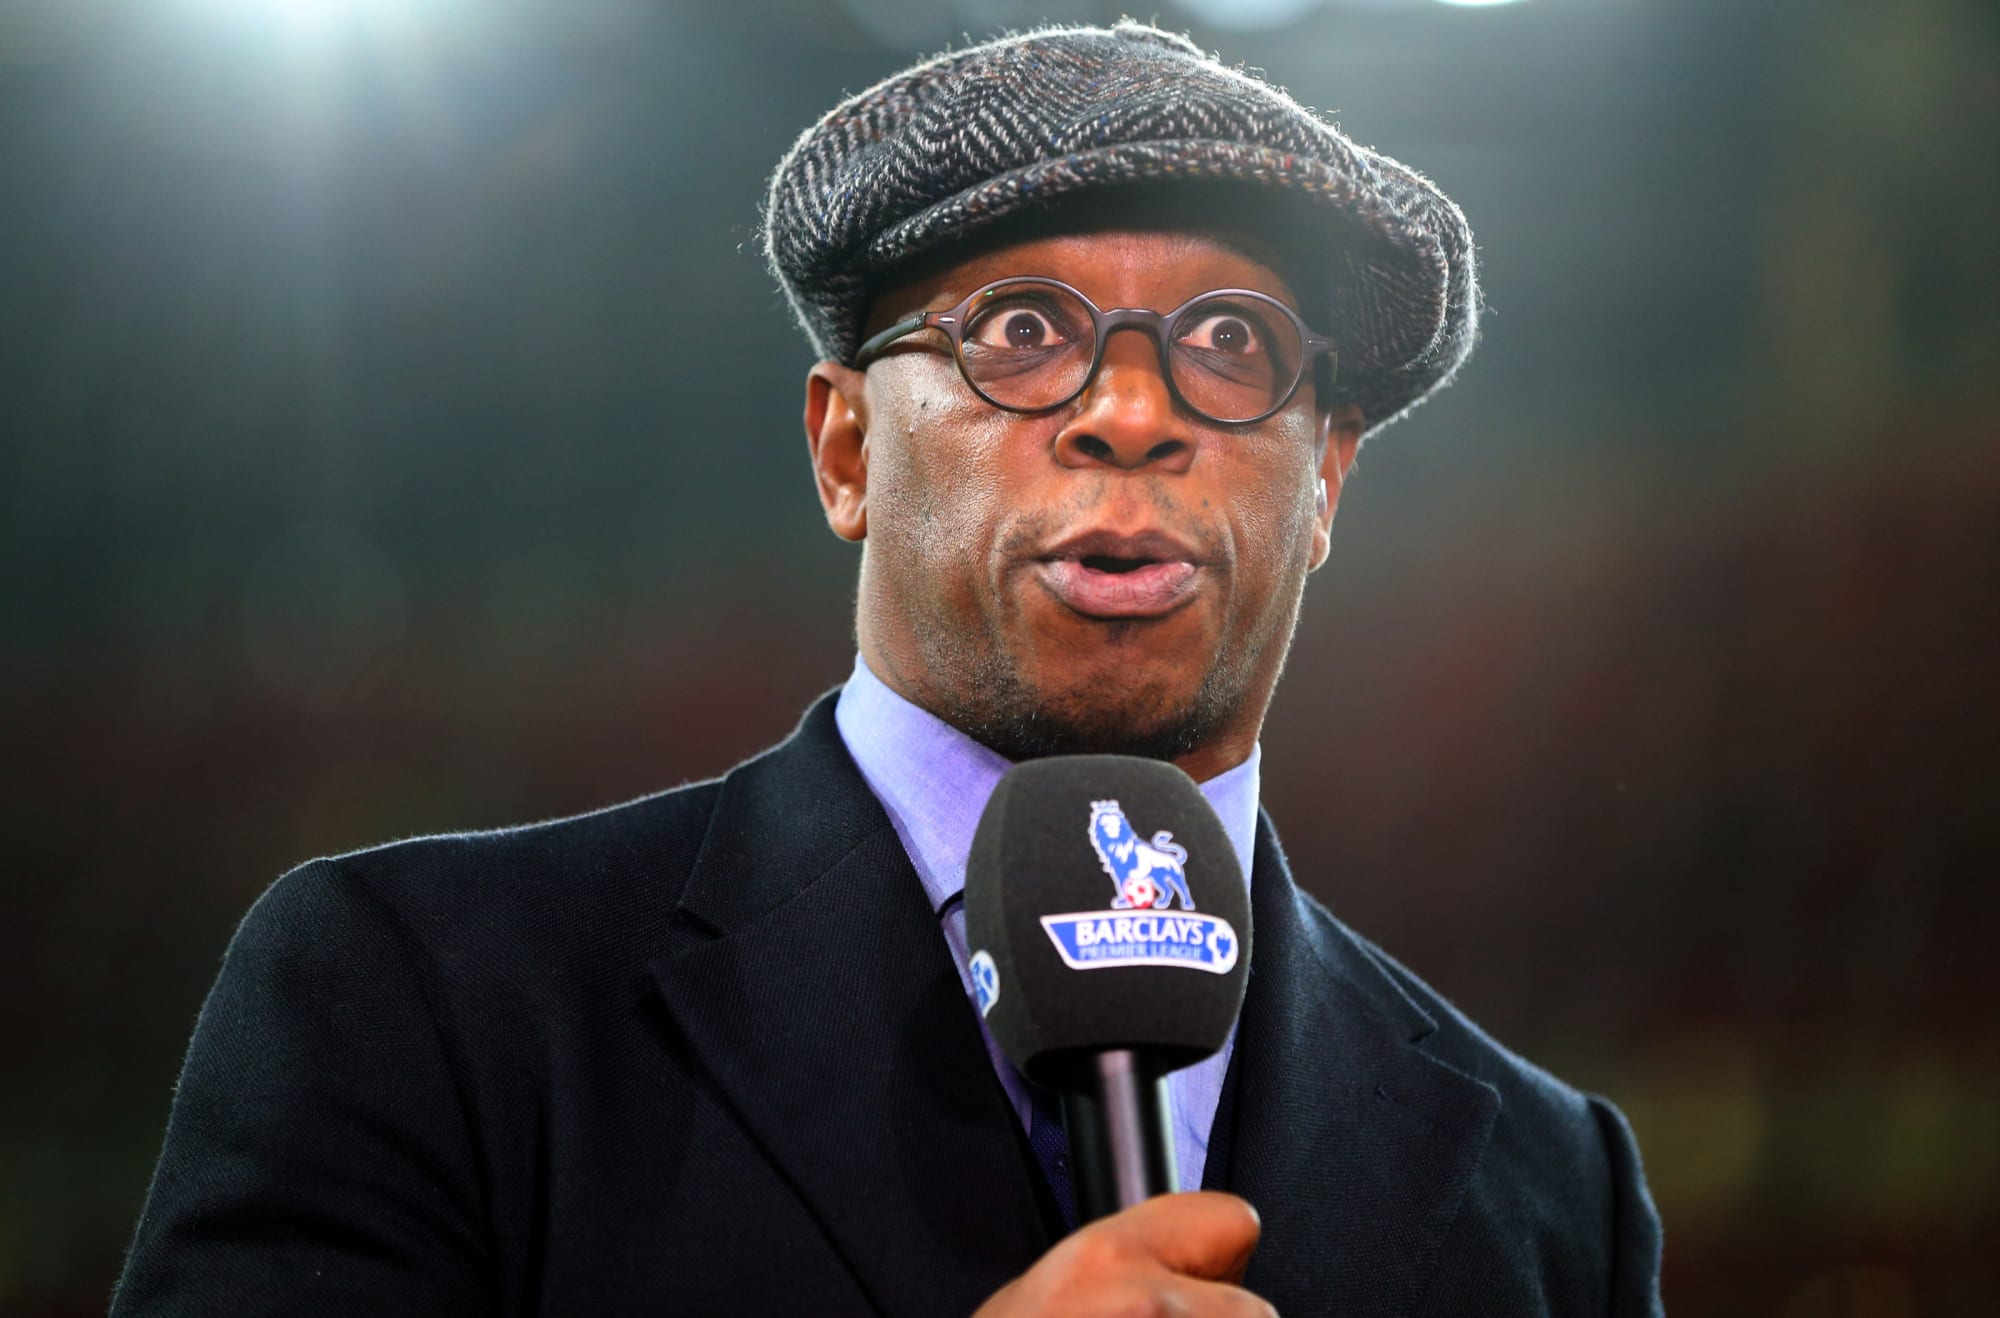 Arsenal News Today - Ian Wright's Justified Calls for Arsenal Star to be Dropped Against Spurs | NewsBurrow thumbnail